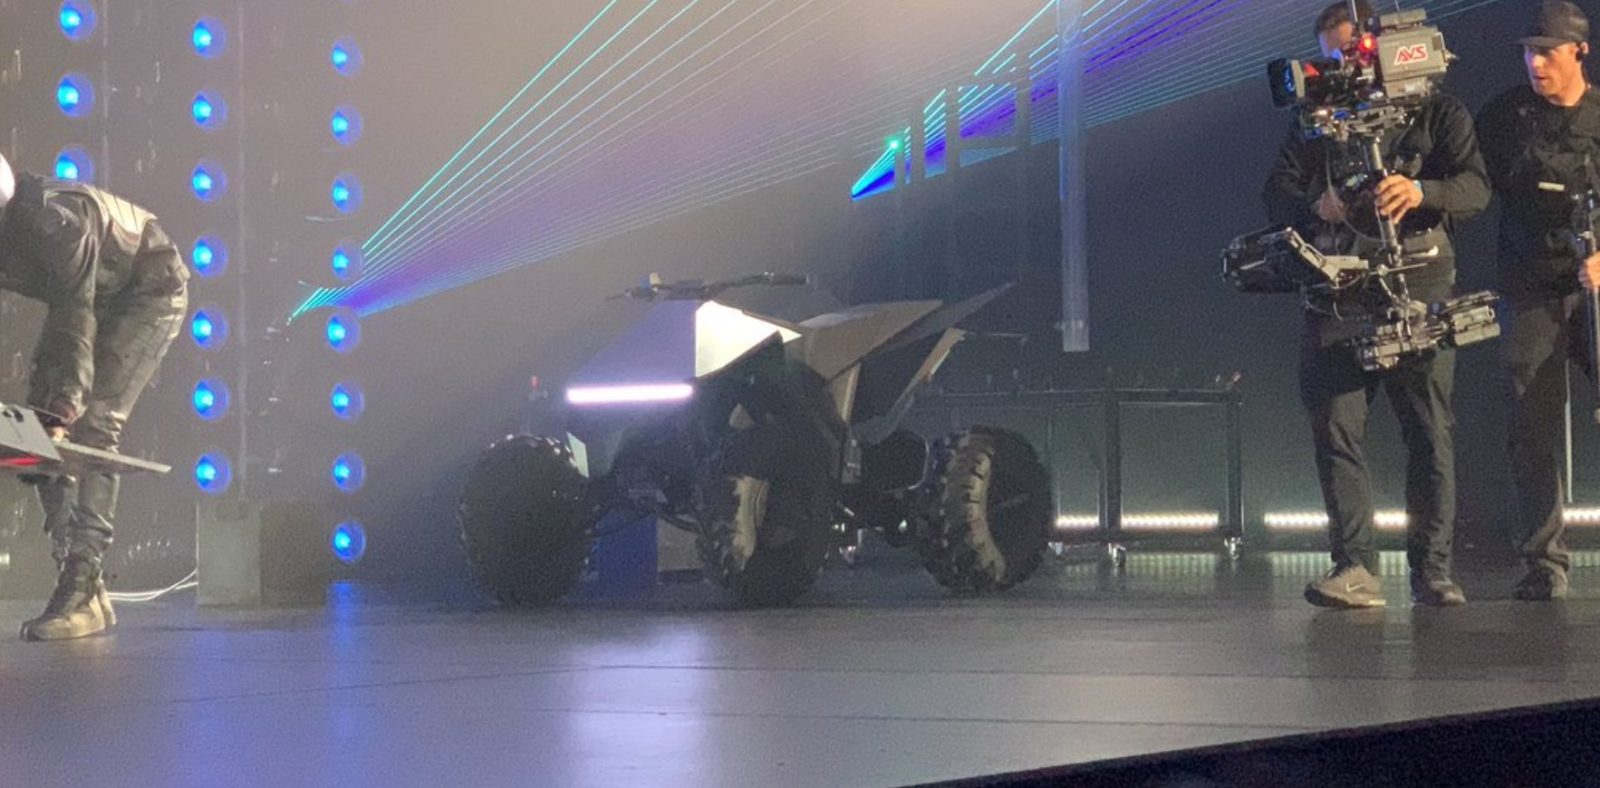 Tesla unveils stunning electric ATV 'Cybersquad' with its pickup truck